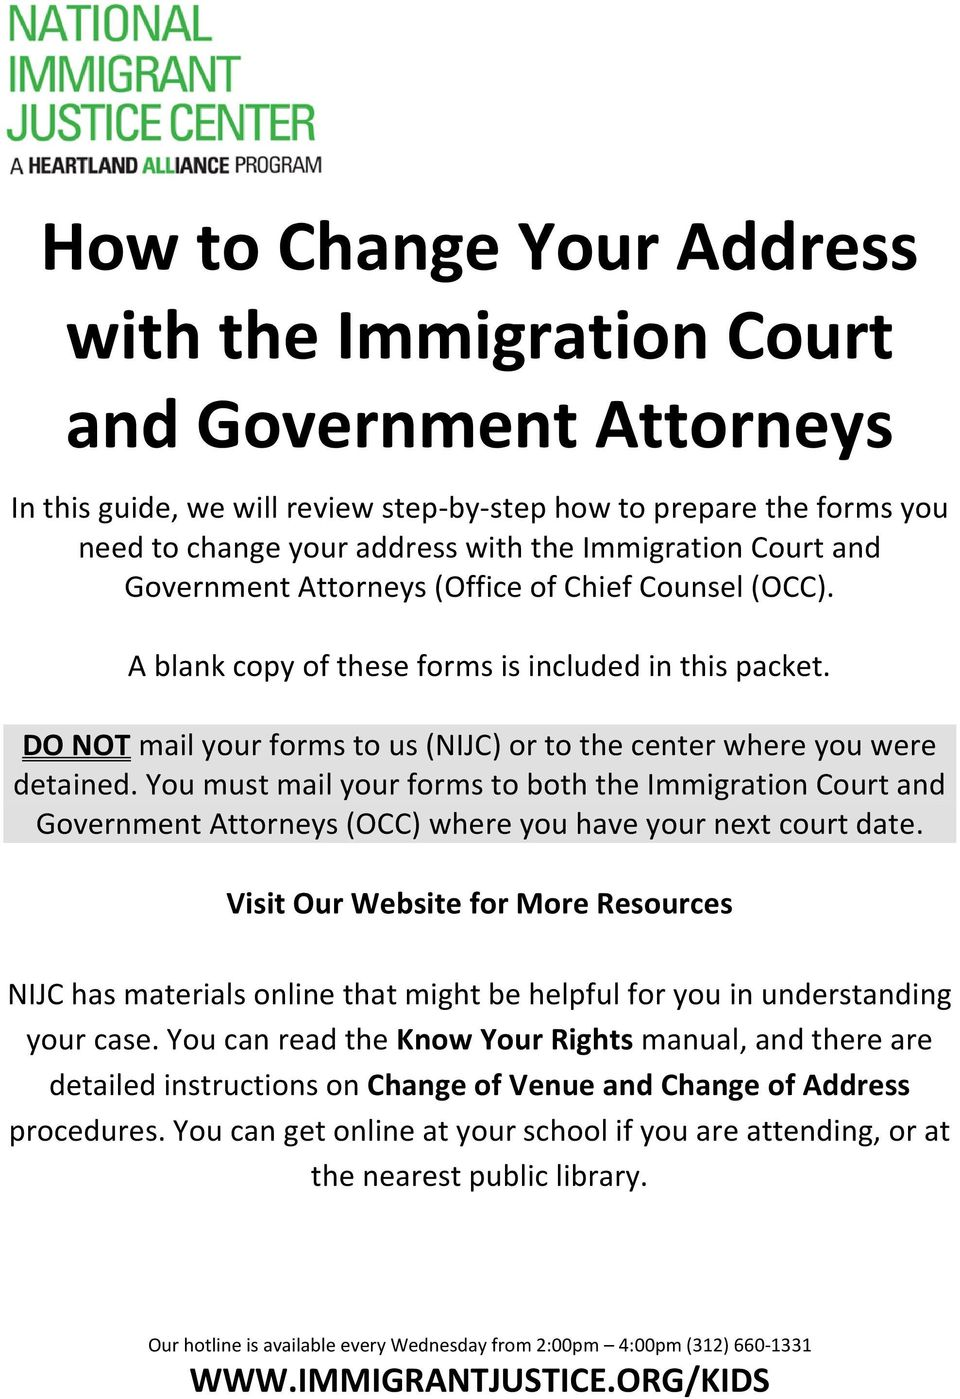 You must mail your forms to both the Immigration Court and Government Attorneys (OCC) where you have your next court date.